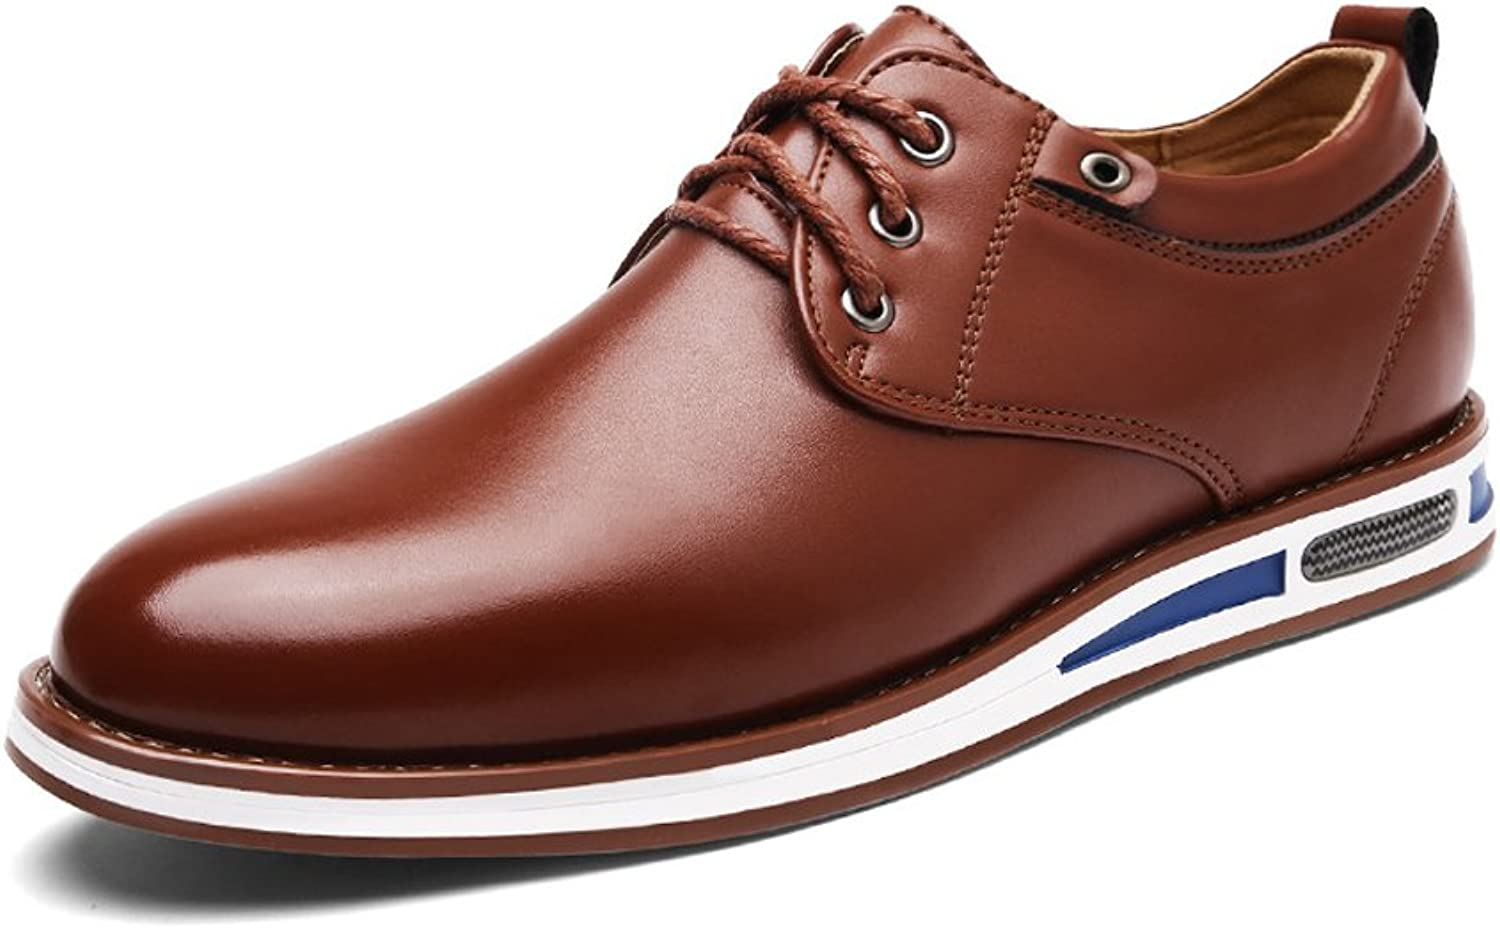 L.W.S Modern Men's Round Toe shoes Matte PU Leather Upper Lace Up Flat Sole Breathable Lined Oxfords